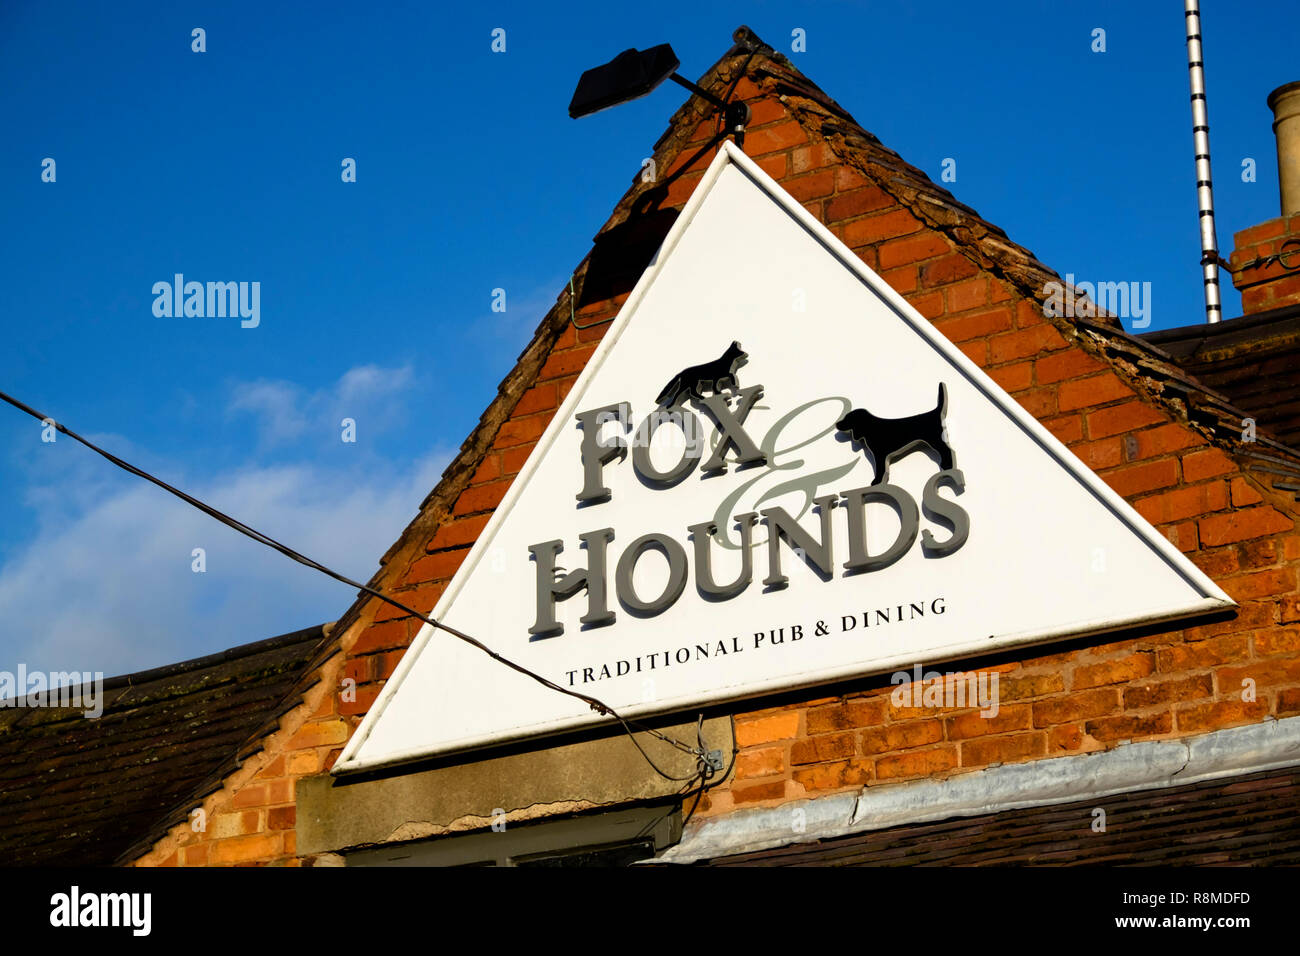 Shenstone is a small village is Staffordshire England UK Fox and Hounds Pub sign Stock Photo